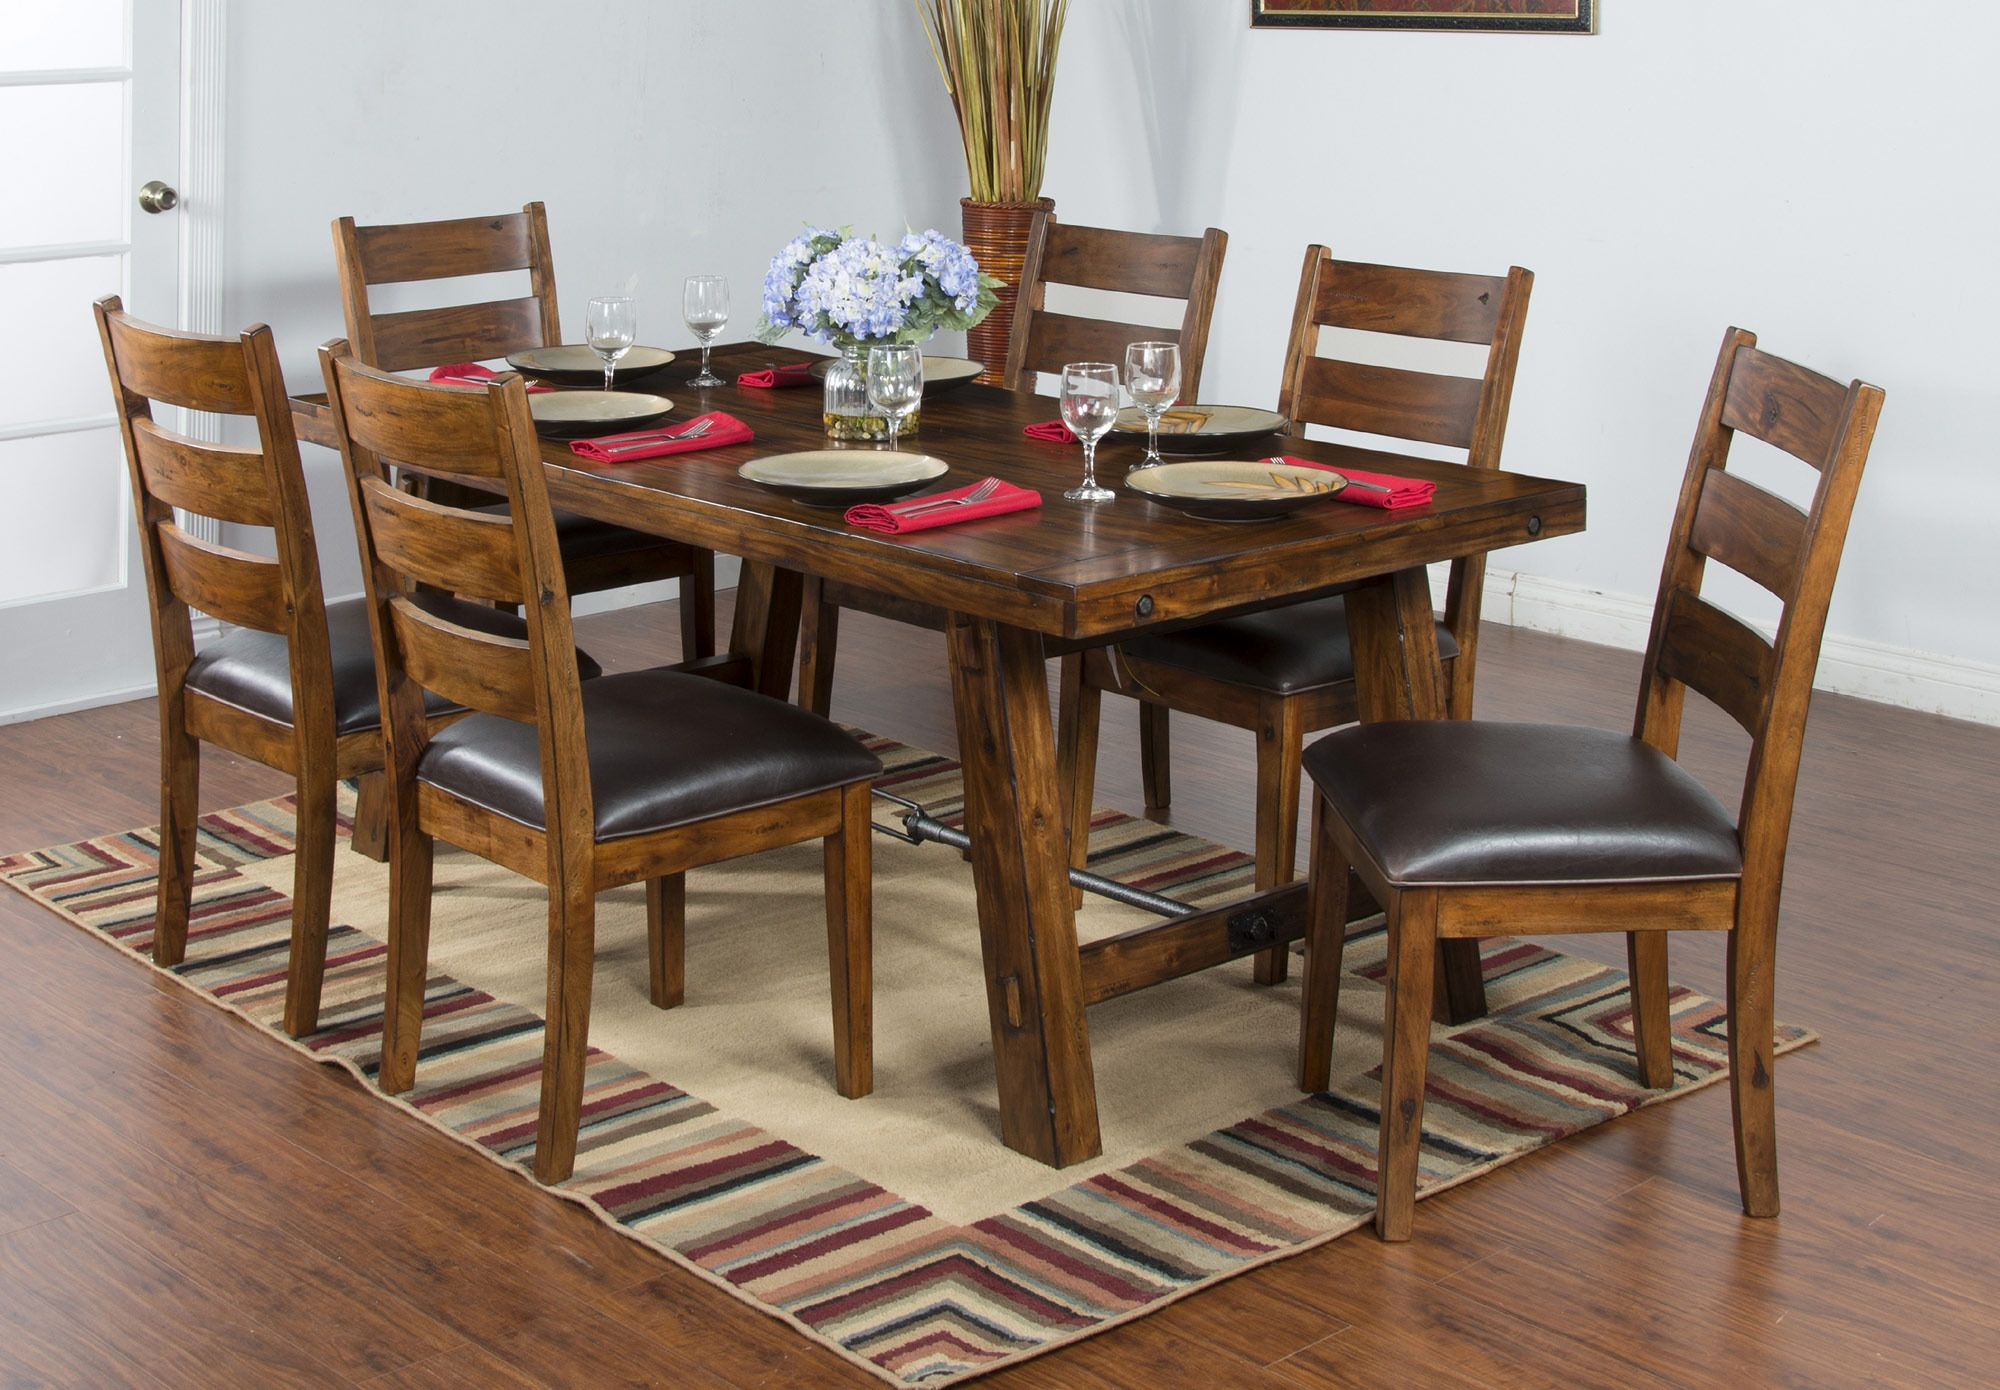 Tuscany Dining Table Set  Sunny Designs Furniture  Home Gallery Endearing Dining Room Table Chairs Design Inspiration